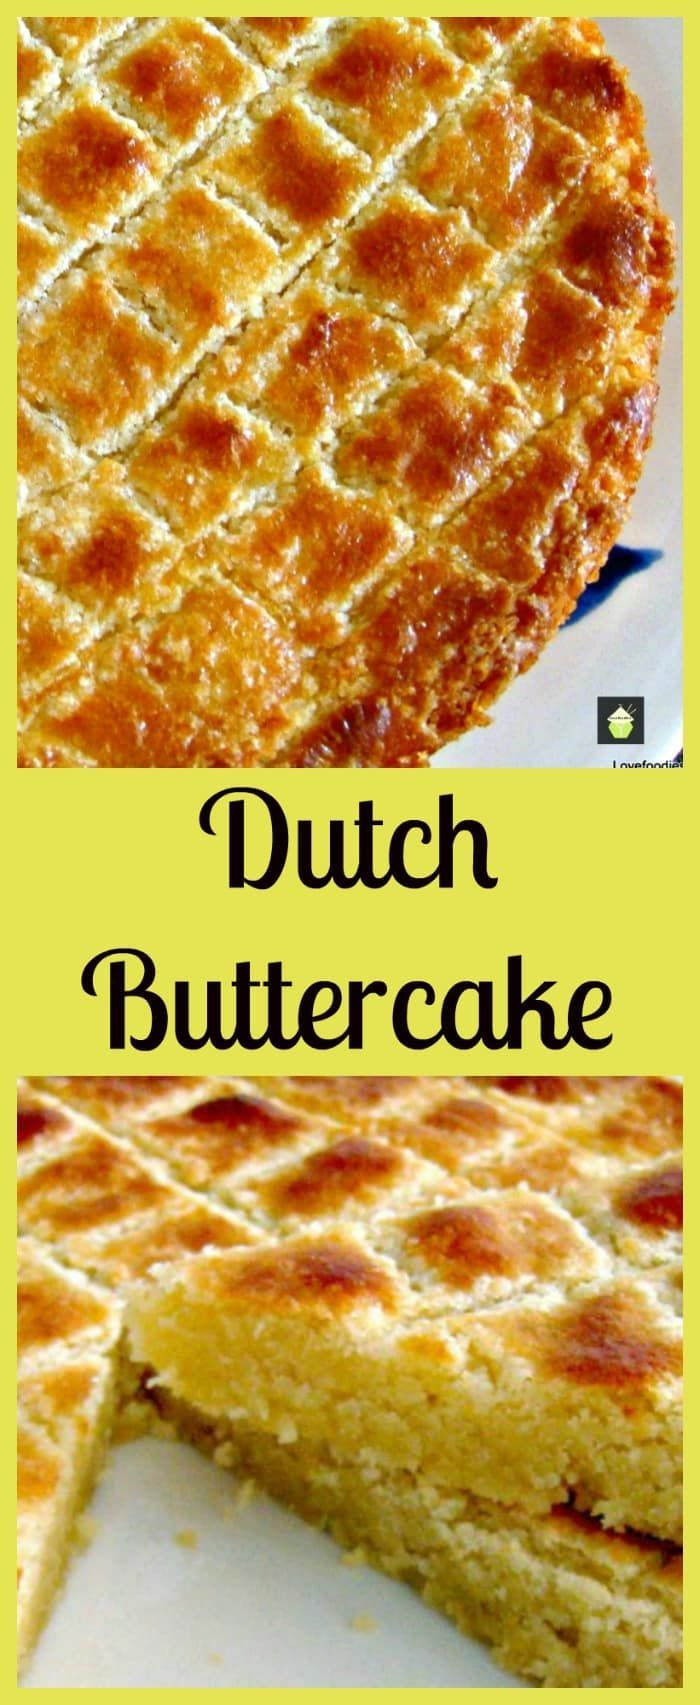 Dutch Buttercake (Boterkoek) . This is a moist, soft butter cake, famous in the Netherlands. Often served with a cup of coffee. Easy to make and very popular! via @lovefoodies